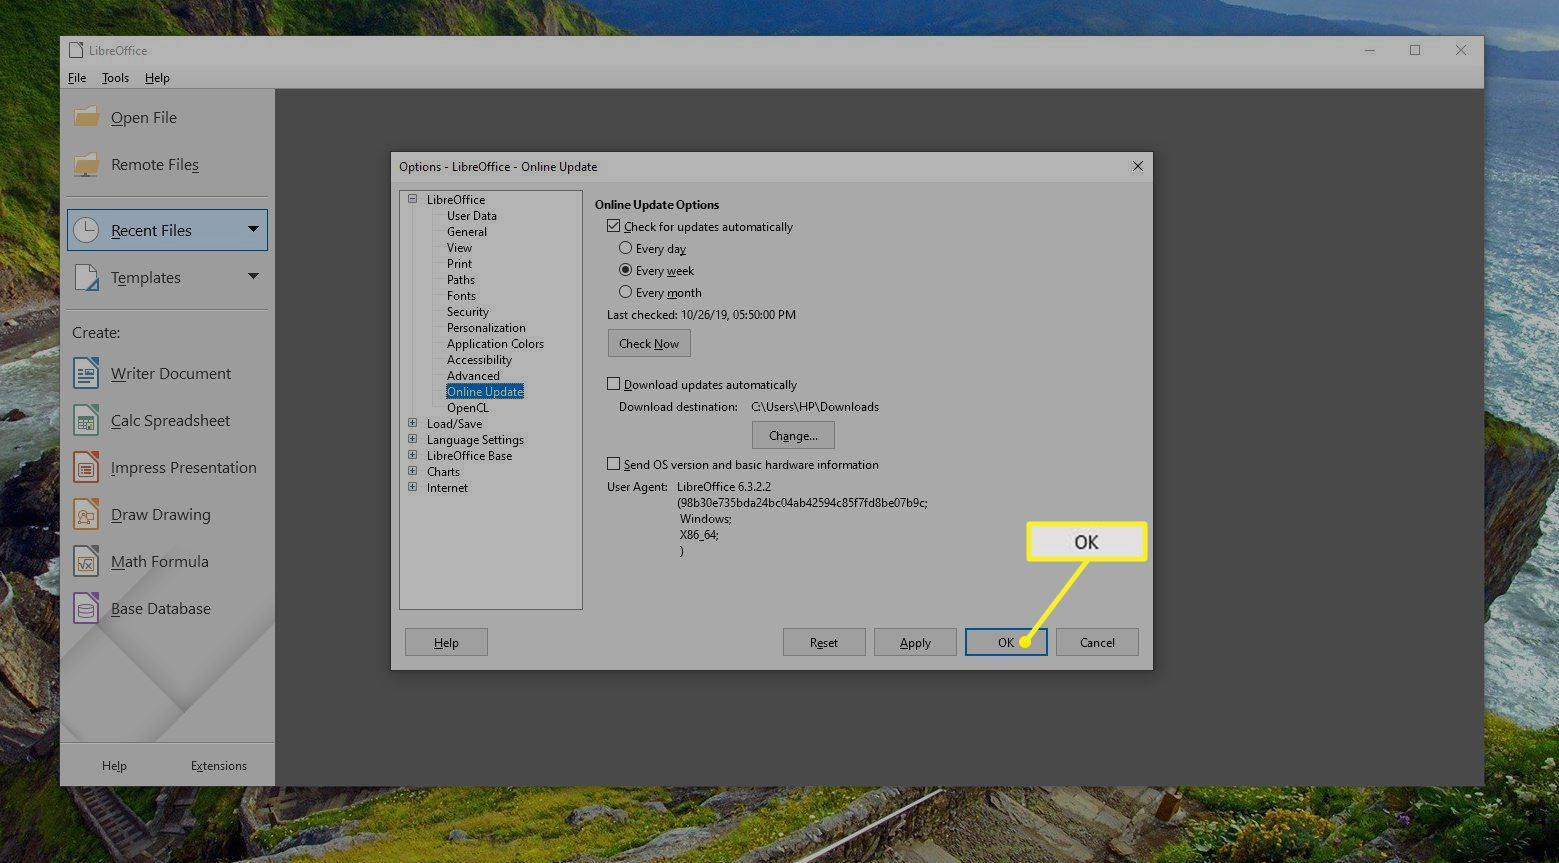 LibreOffice update settings screen with OK highlighted